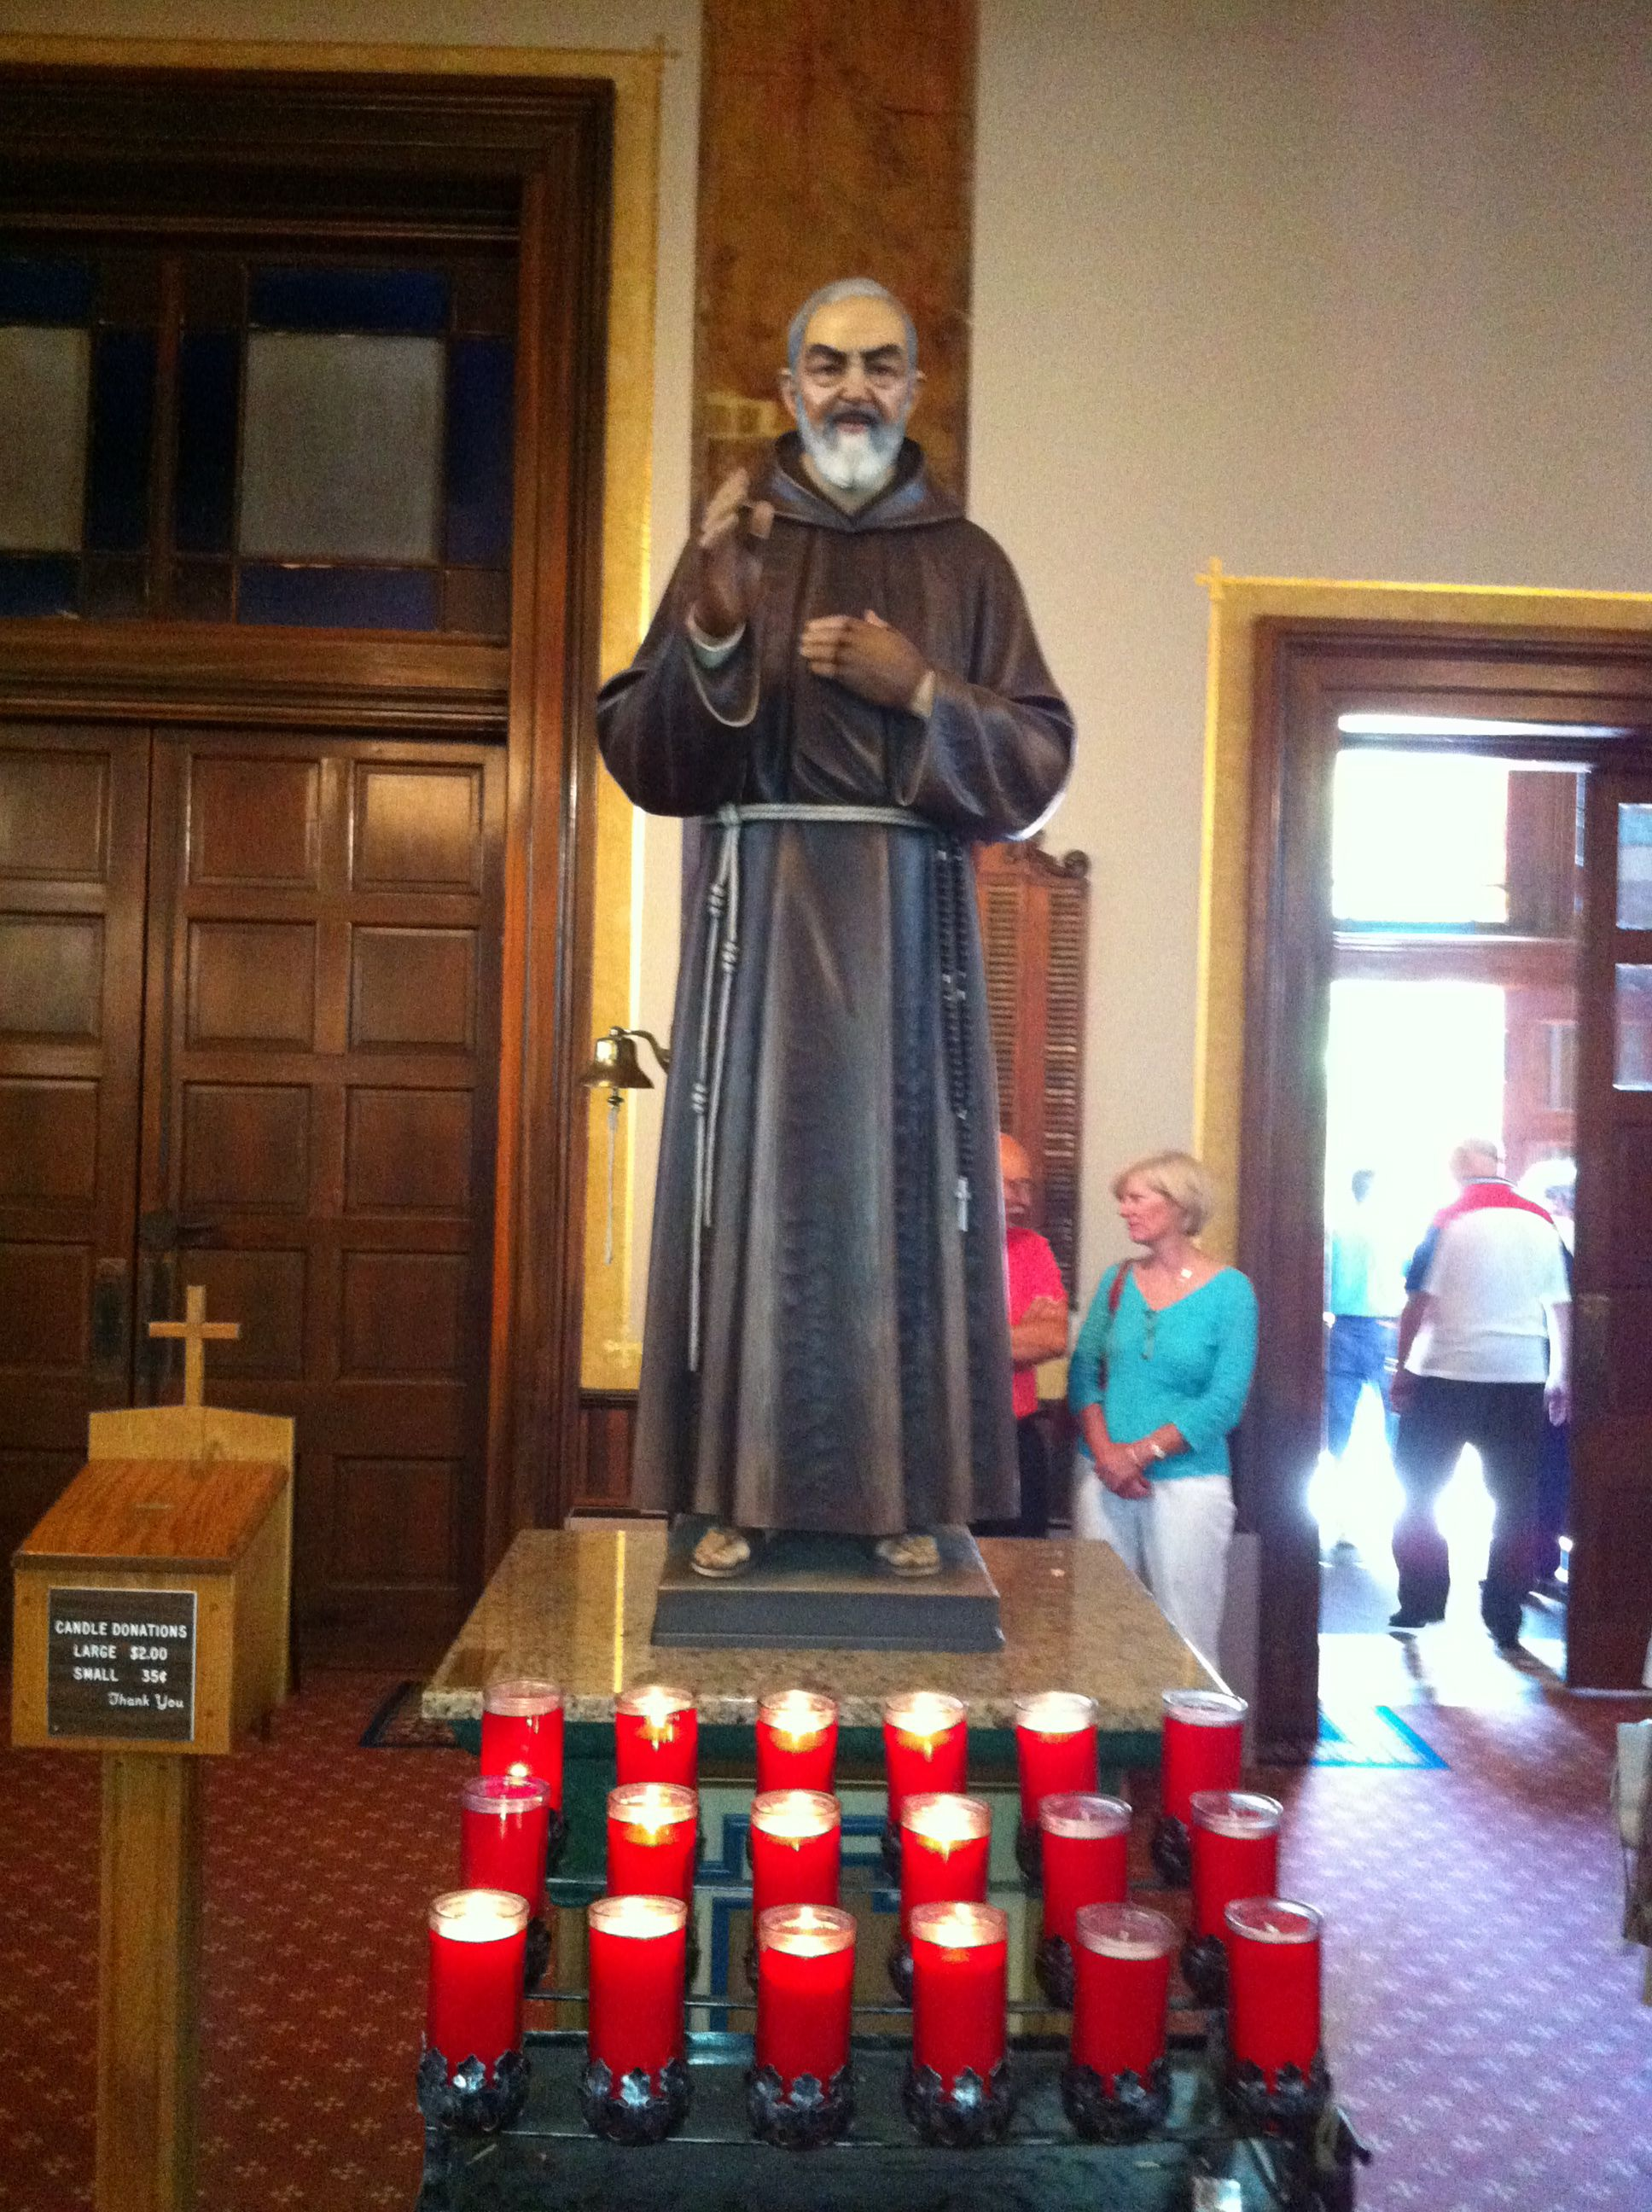 Statue of St. Pio at the Shrine of St. Joseph, where they possess one of his relics for veneration  (Joe Cruz photo).